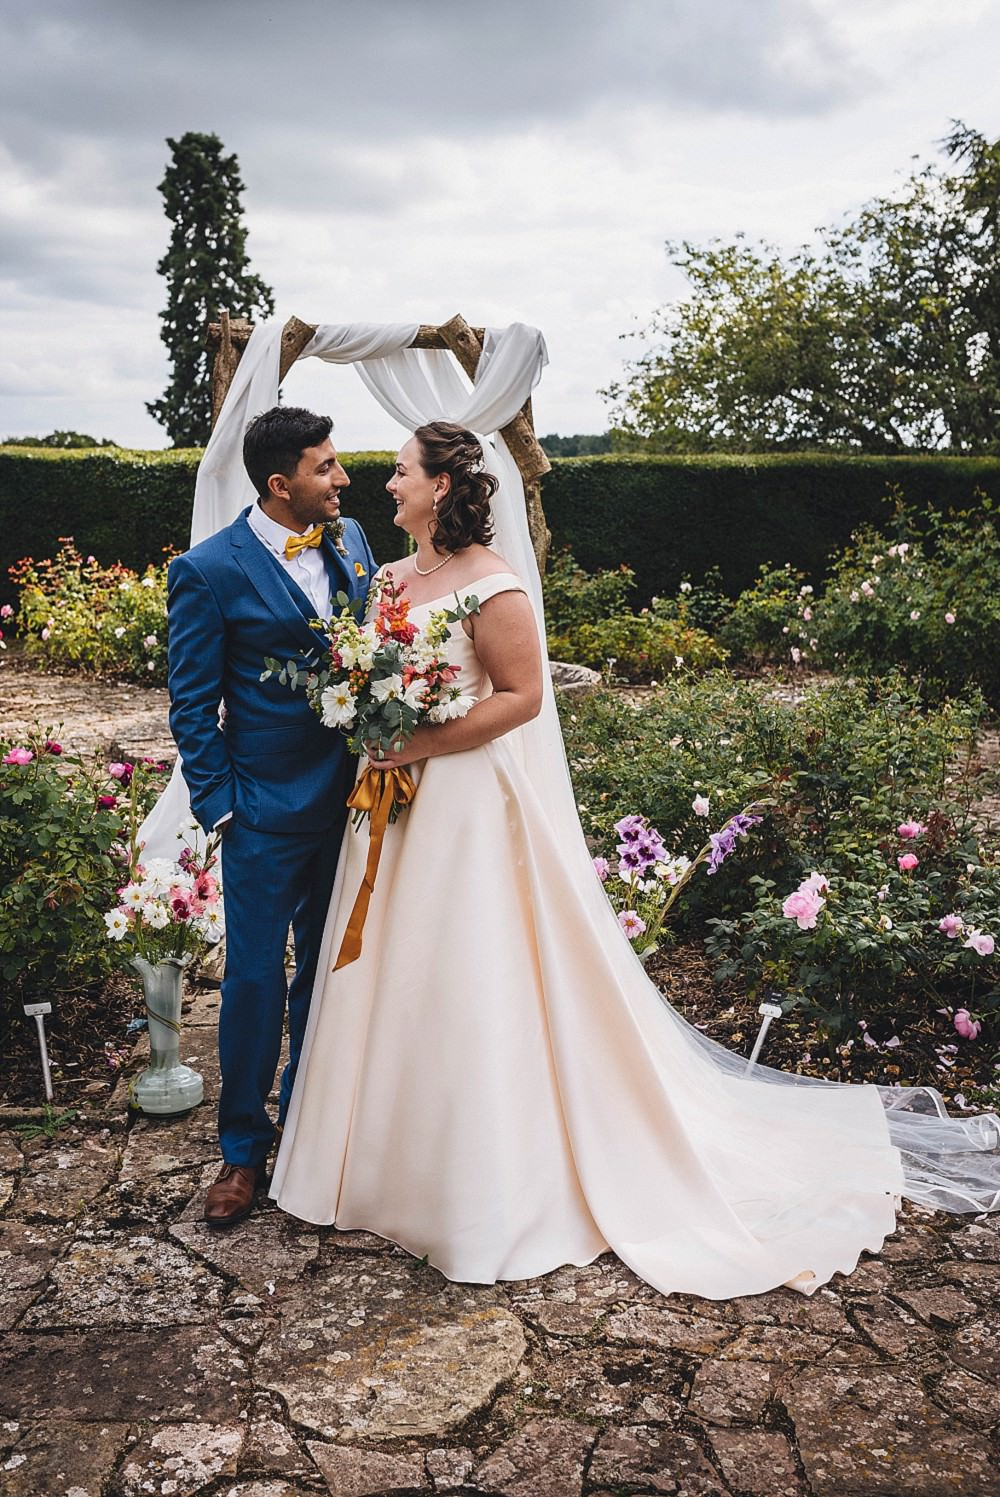 Broadfield Court Wedding Marta May Photography Outdoor Garden Ceremony Flower Arch Fabric